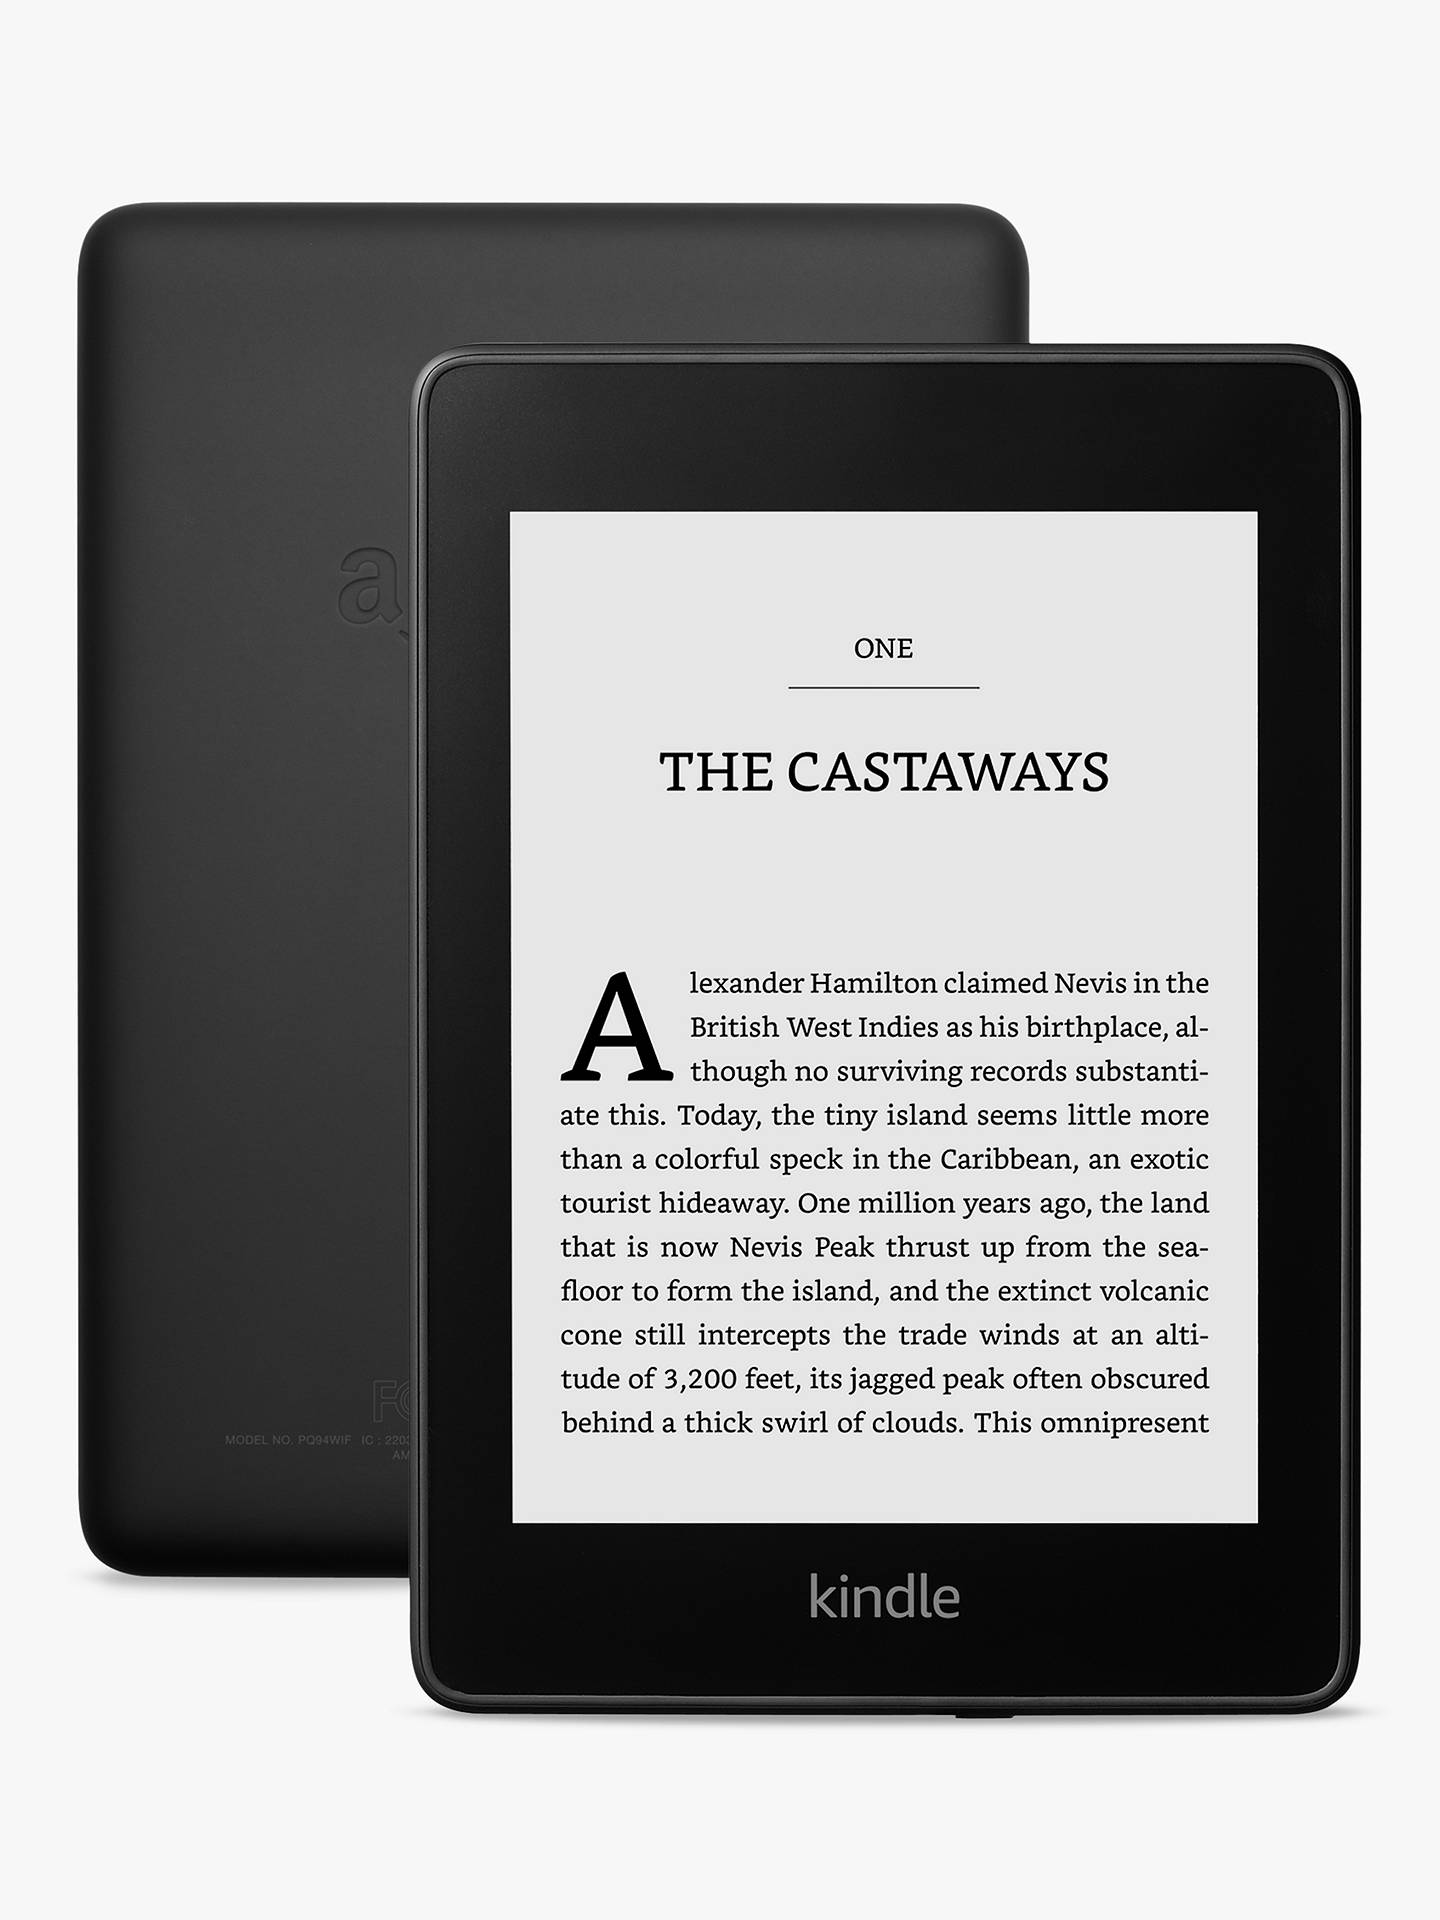 """Buy Amazon Kindle Paperwhite, Waterproof eReader, 6"""" High Resolution Illuminated Touch Screen, Built-In Audible, 32GB Online at johnlewis.com"""